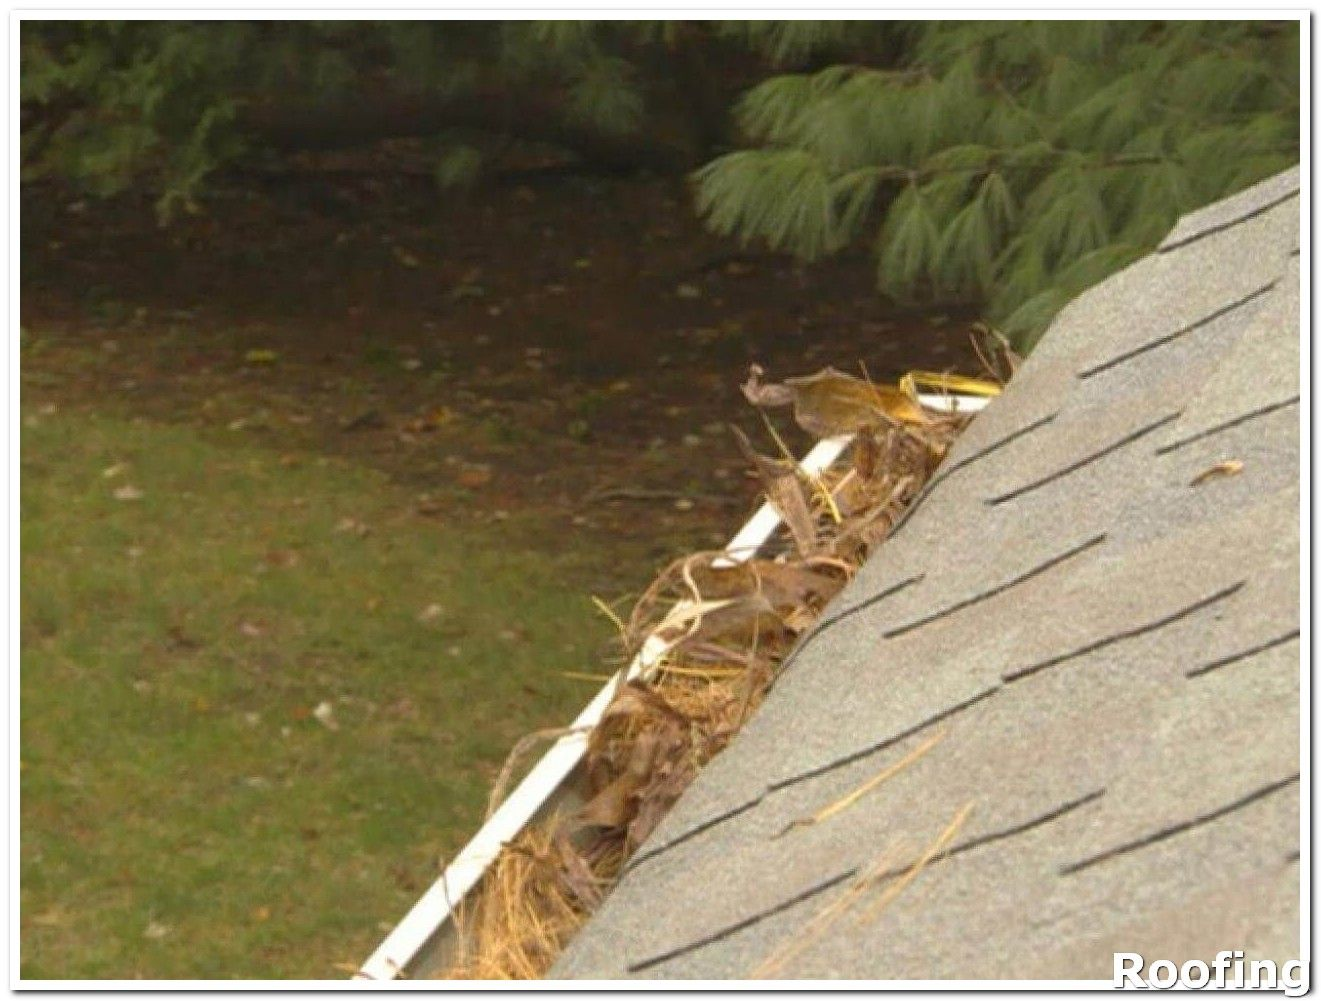 Roofing Tips That Everyone Needs To Know About Be Sure To Check Out This Helpful Article Roofingtips Roof Repair Diy Roofing Gutters